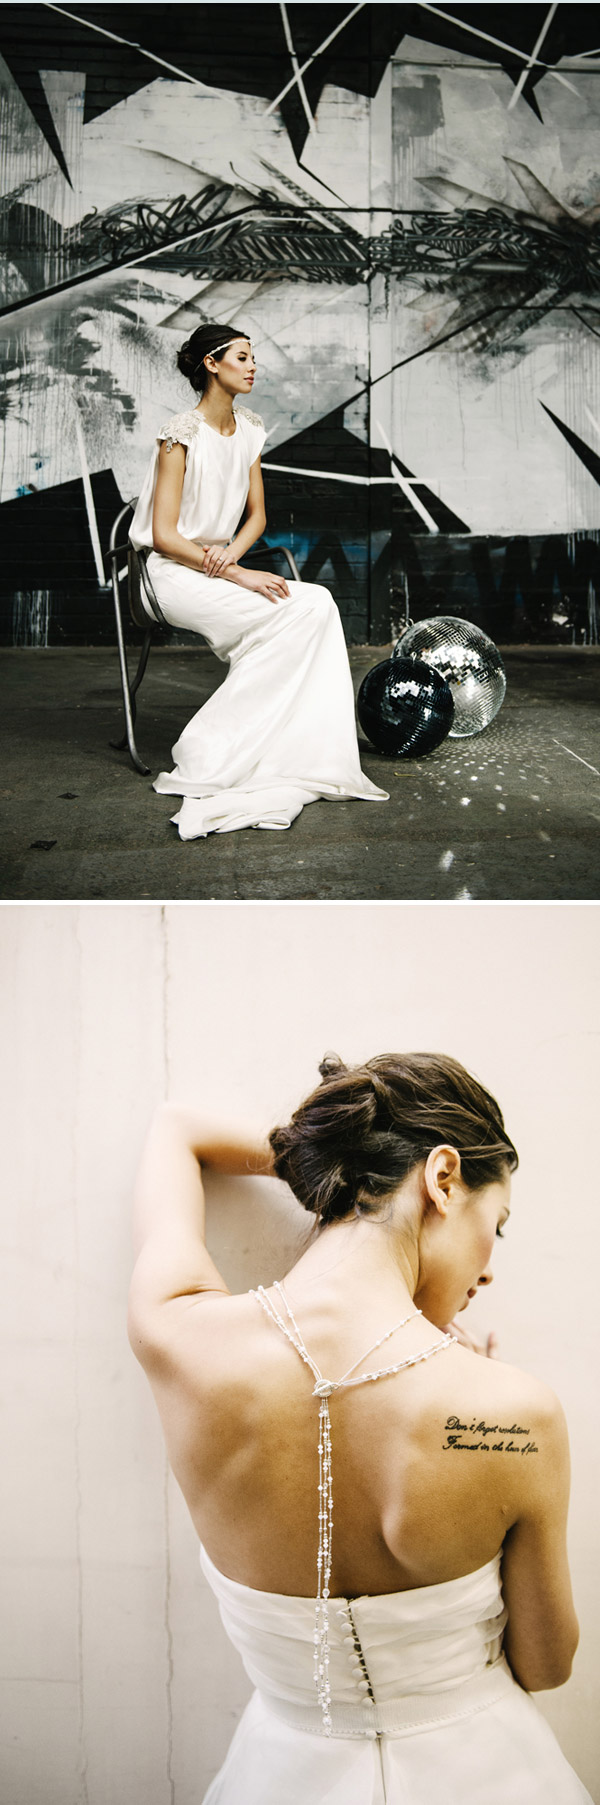 AW12 Glitter Ball 1 RMB   Rock My Boutique AW12 Campaign.